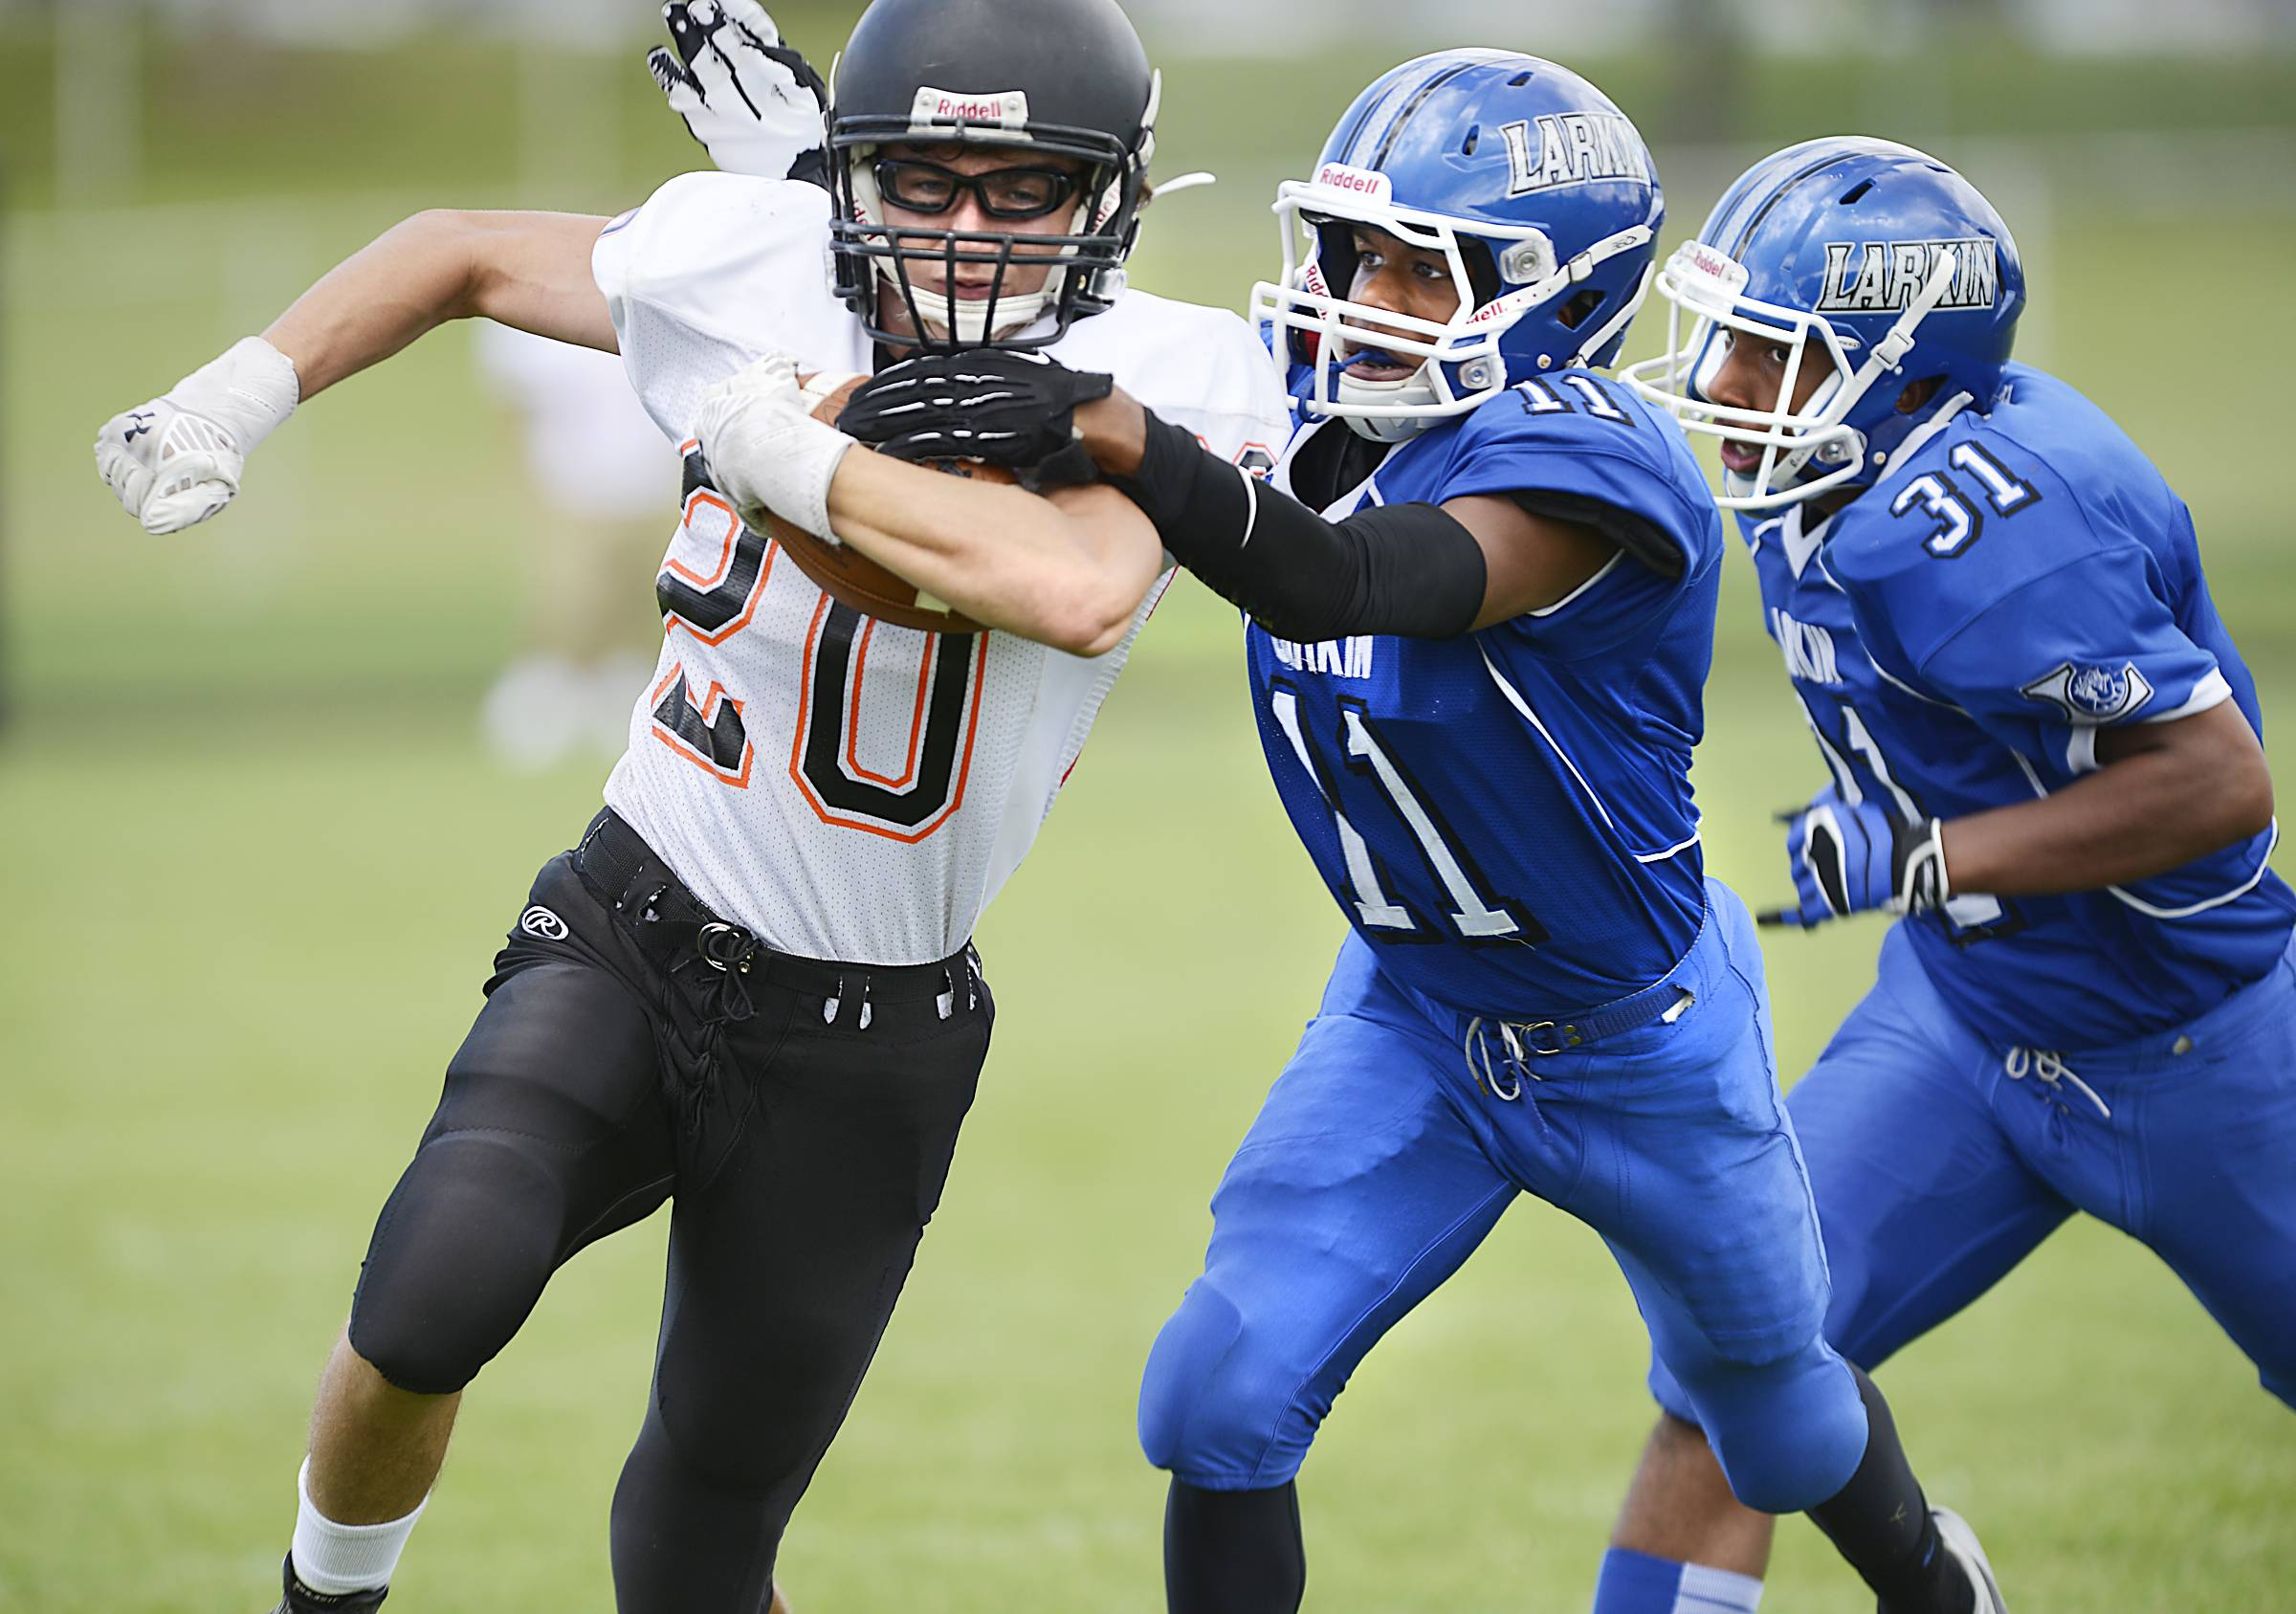 Larkin's AJ Hunter grabs McHenry's Giovanni Purpura as teammate Jared Richardson follows Saturday at Memorial Field in Elgin.